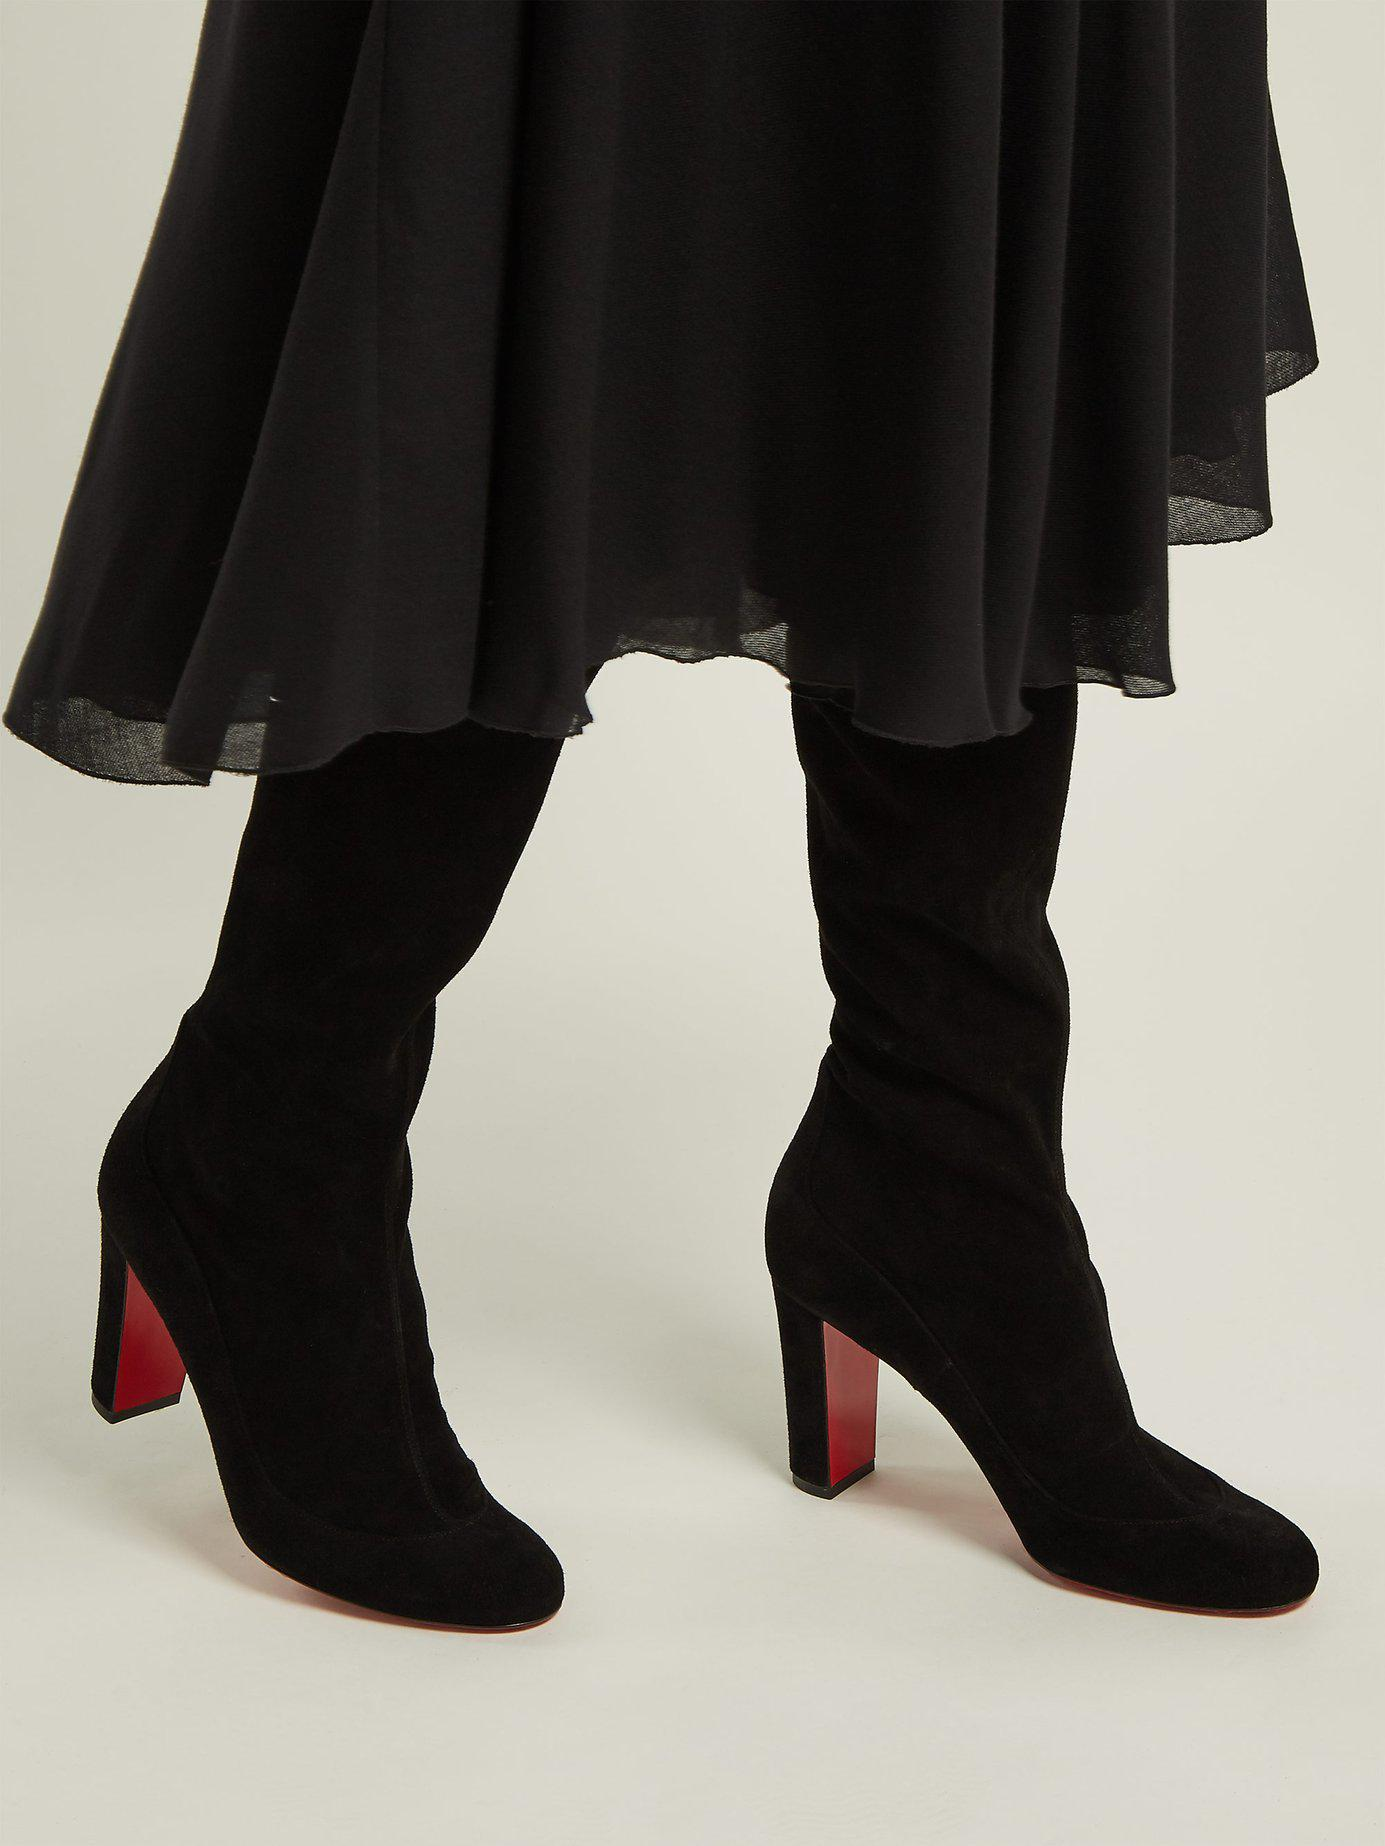 e38b06f3158 Christian Louboutin - Black Kiss Me Gina 85 Over The Knee Boots - Lyst.  View fullscreen